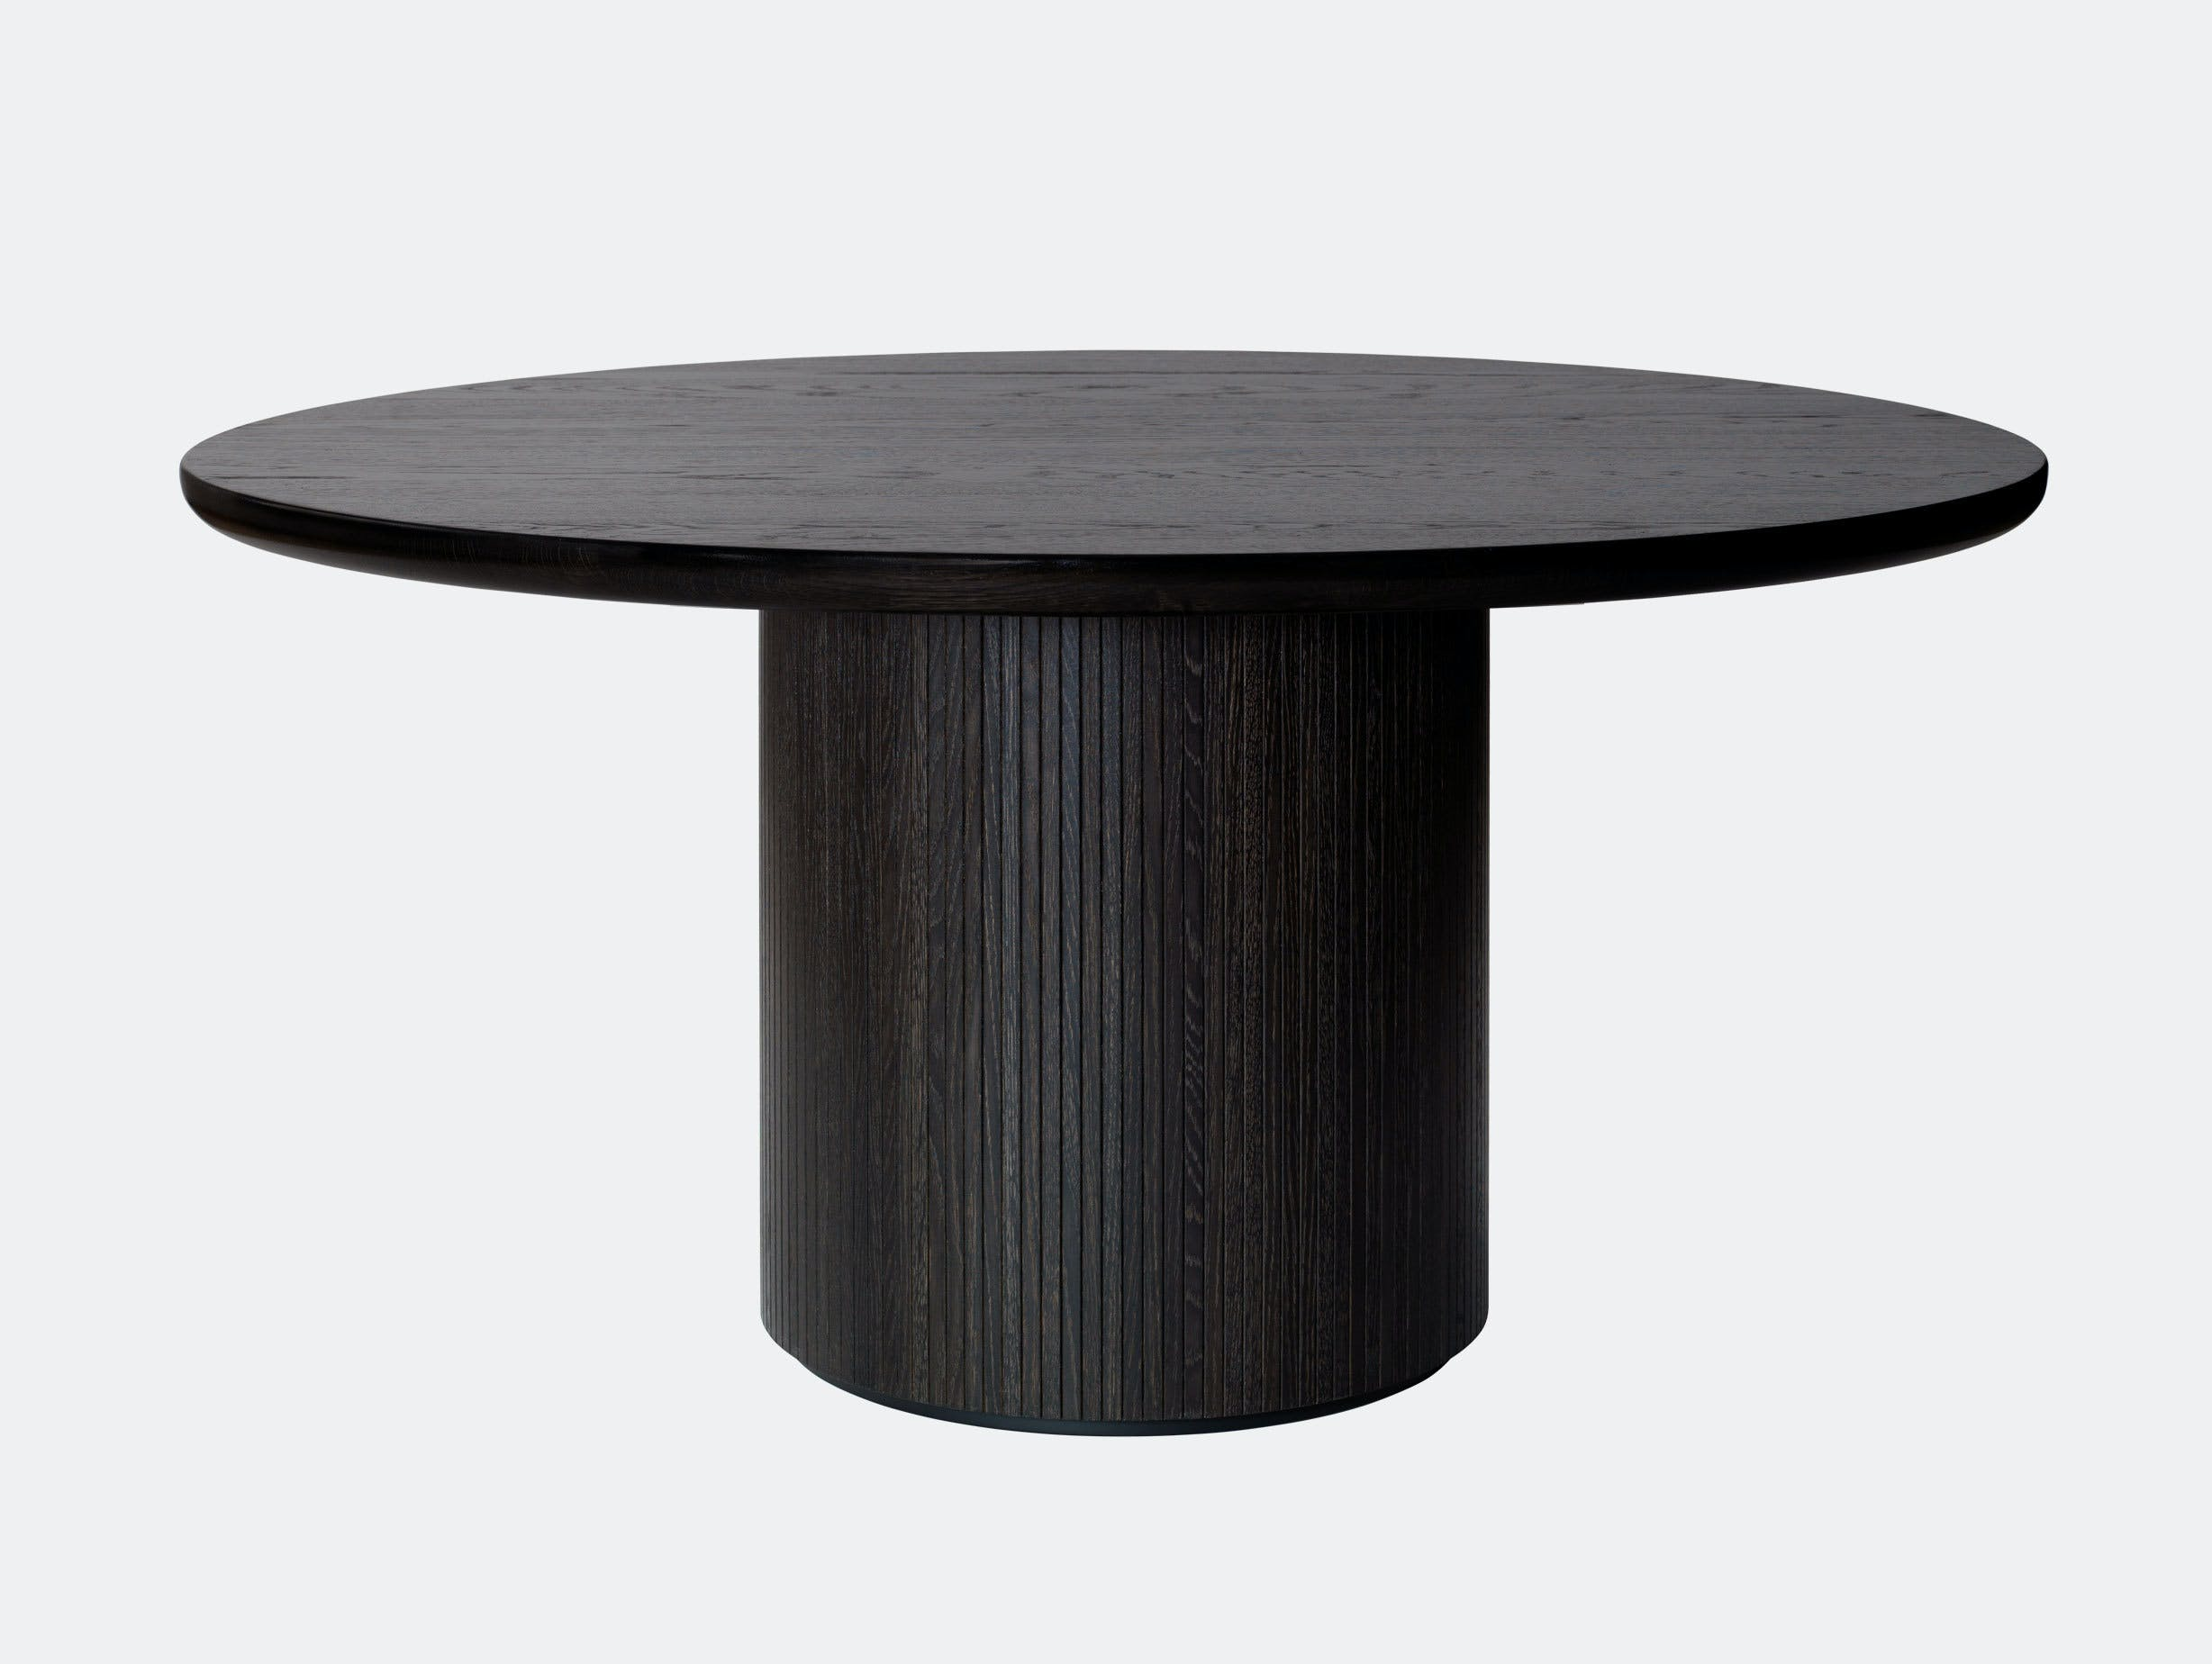 Gubi Moon Round Dining Table dia 150cm black st oak Space Copenhagen